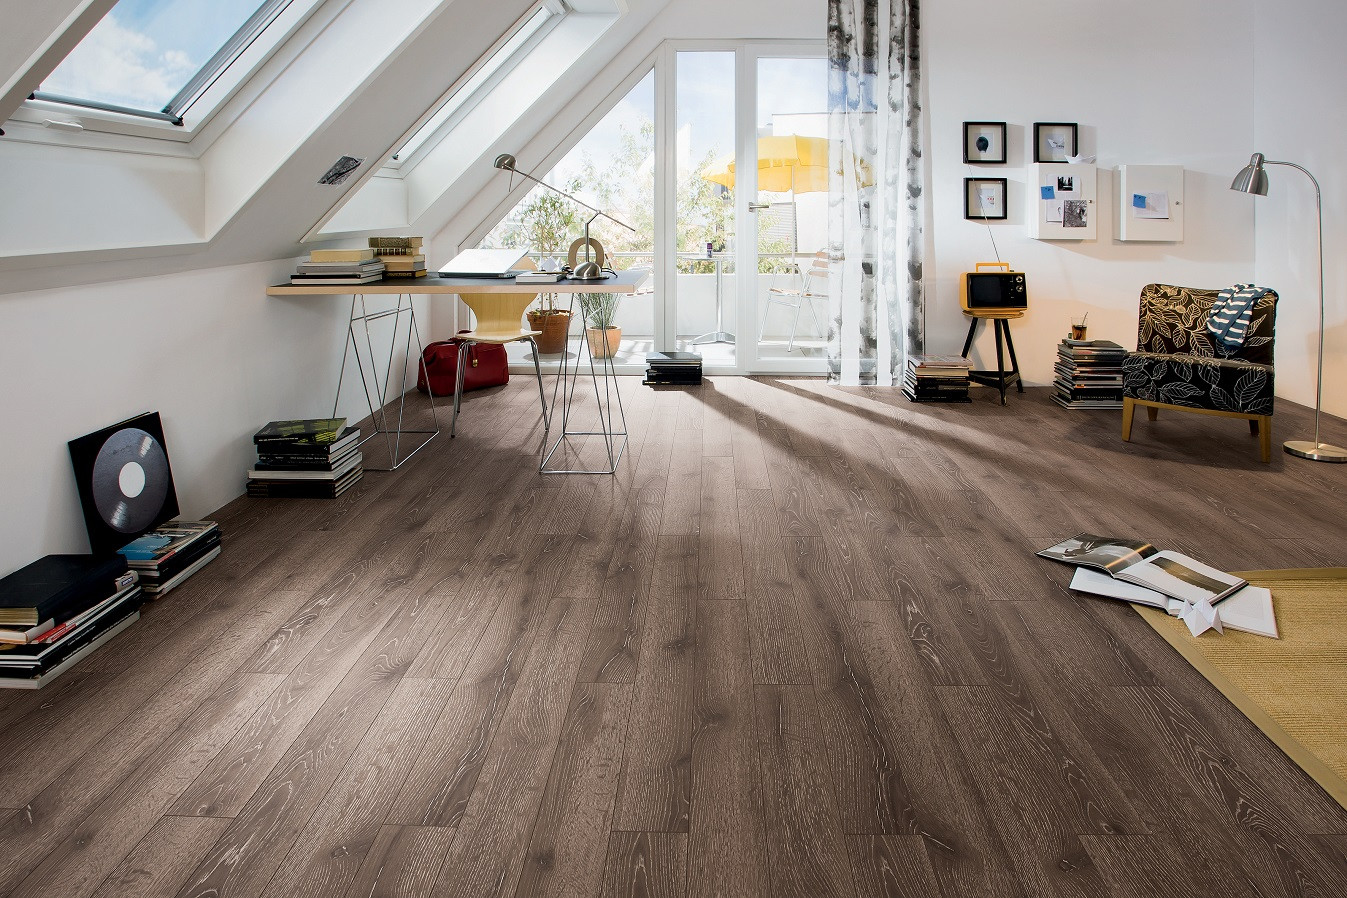 Janka Hardness Scale Hardwood Flooring Of Ca Laminate Flooring California Wood Floor Boards San Jose Los with Regard to Ca Best Place to Buy Hardwood Flooring